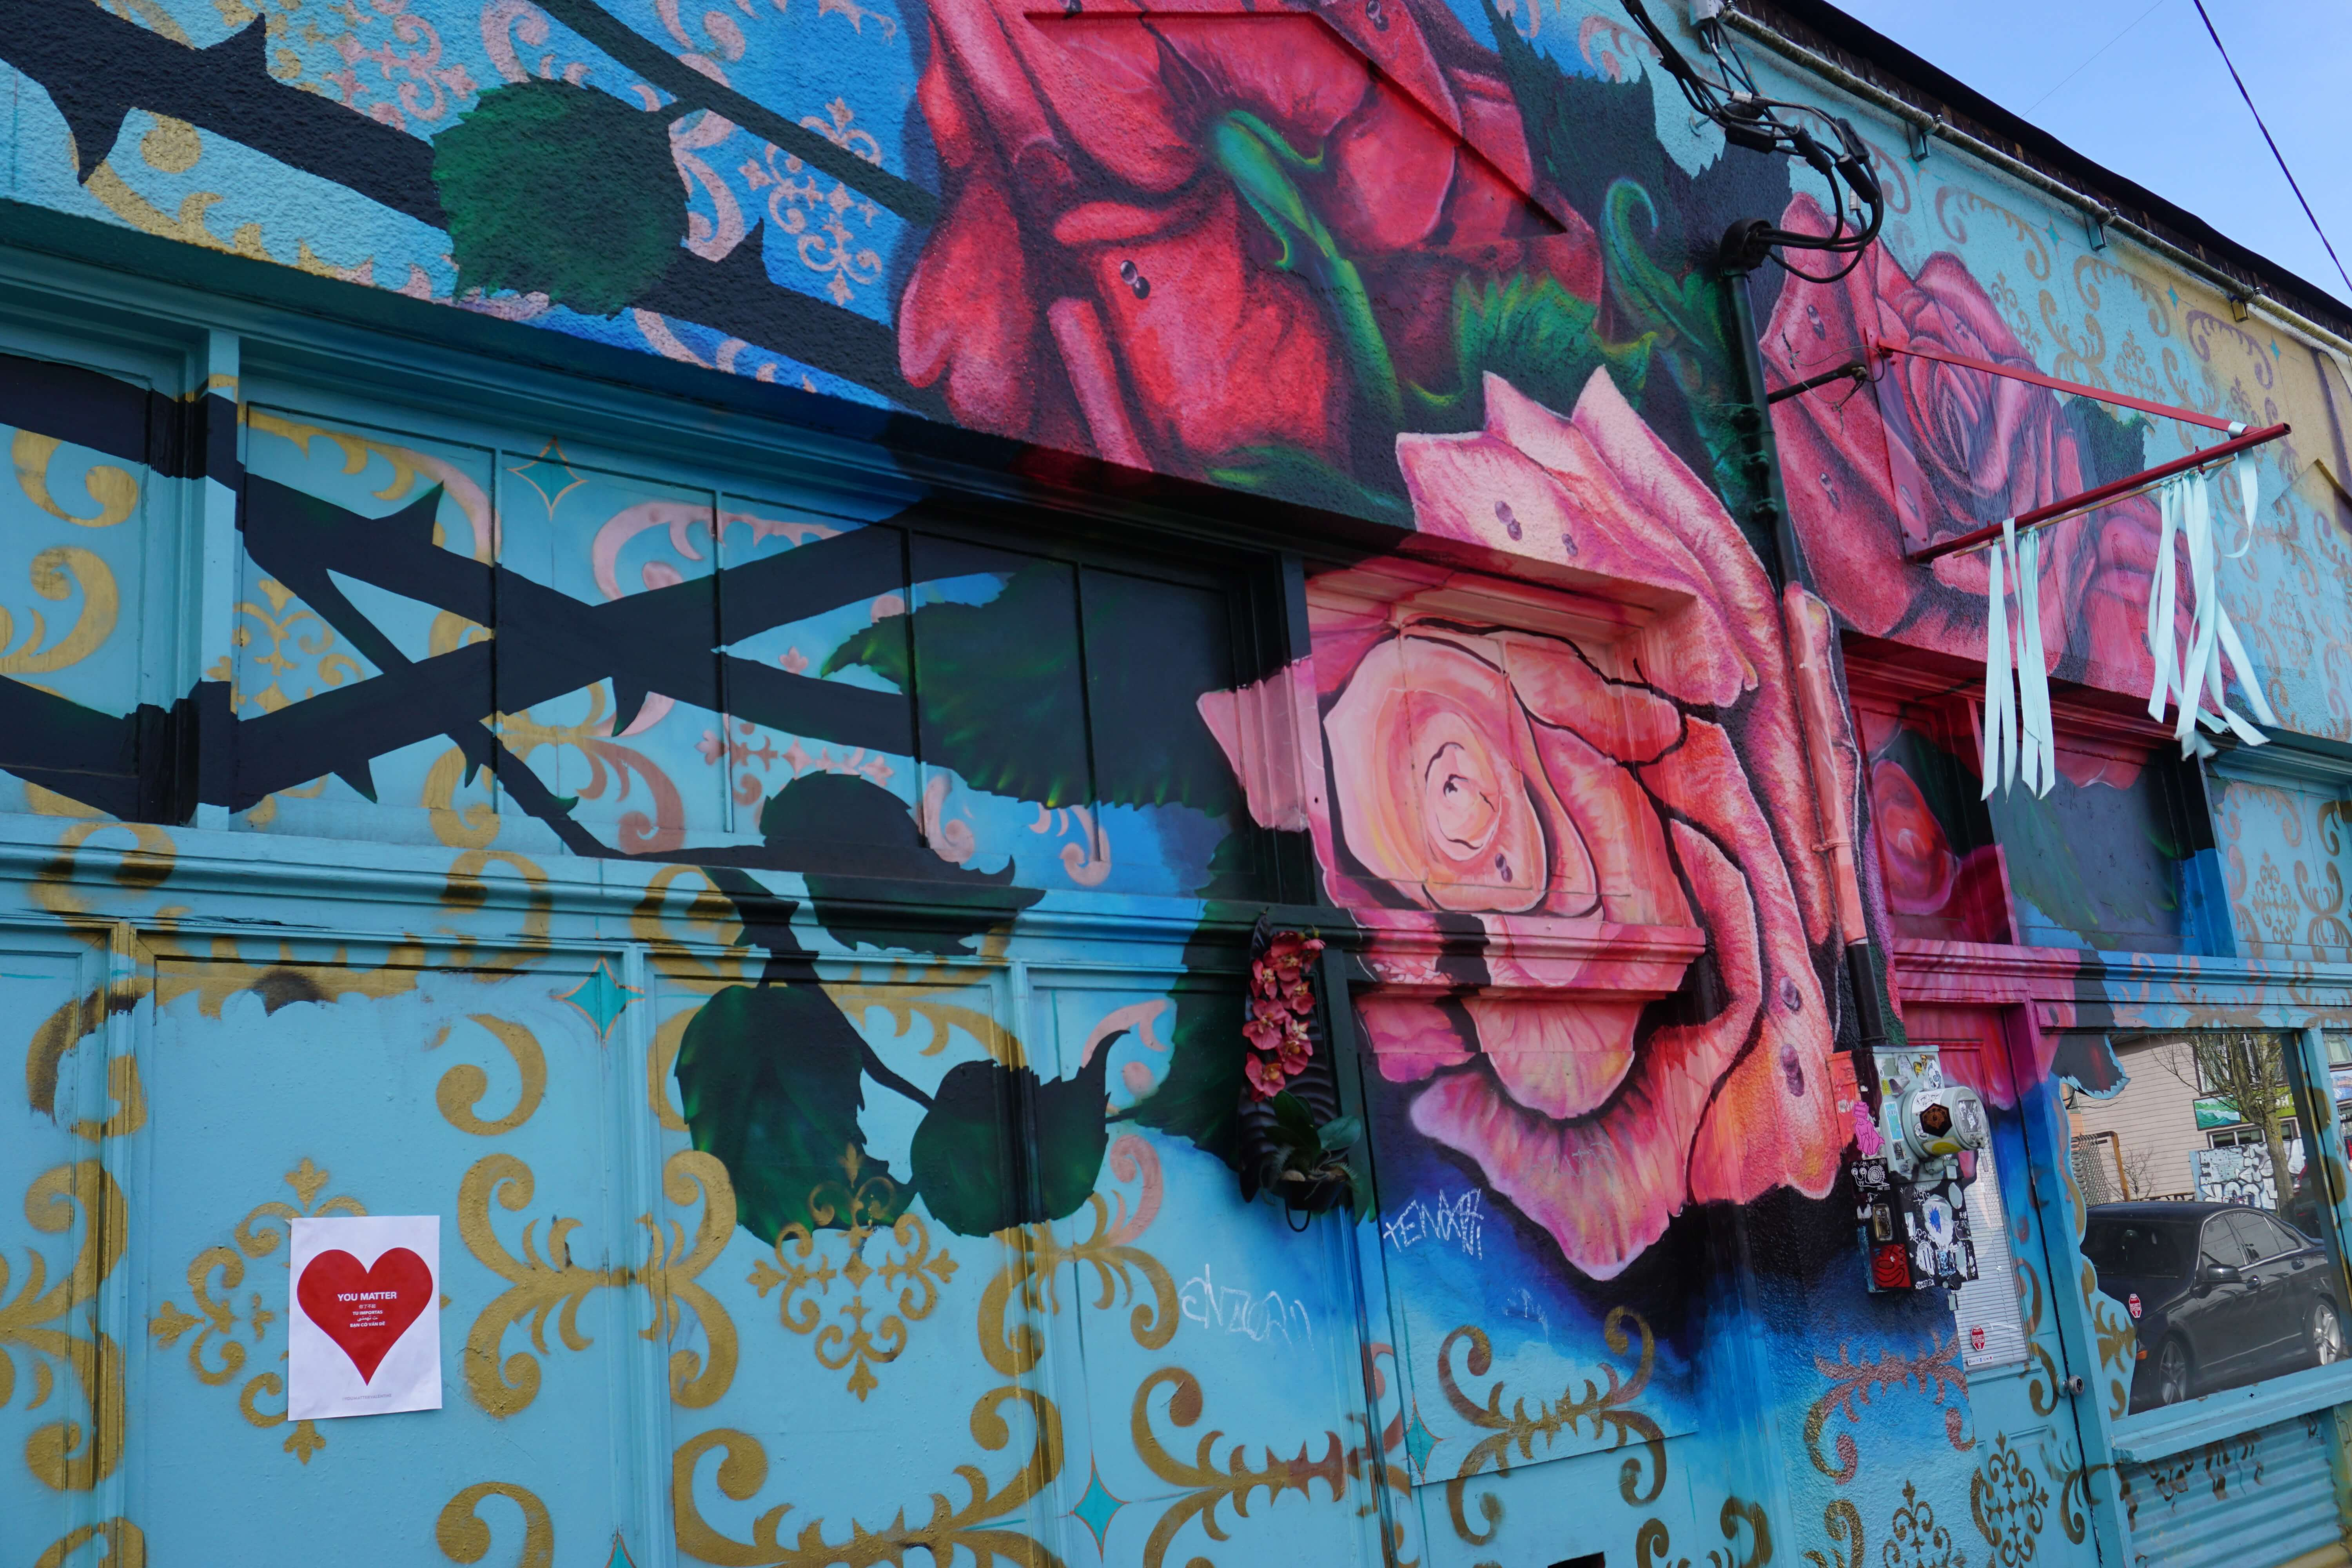 A lovely mural of roses in the Alberta Arts District